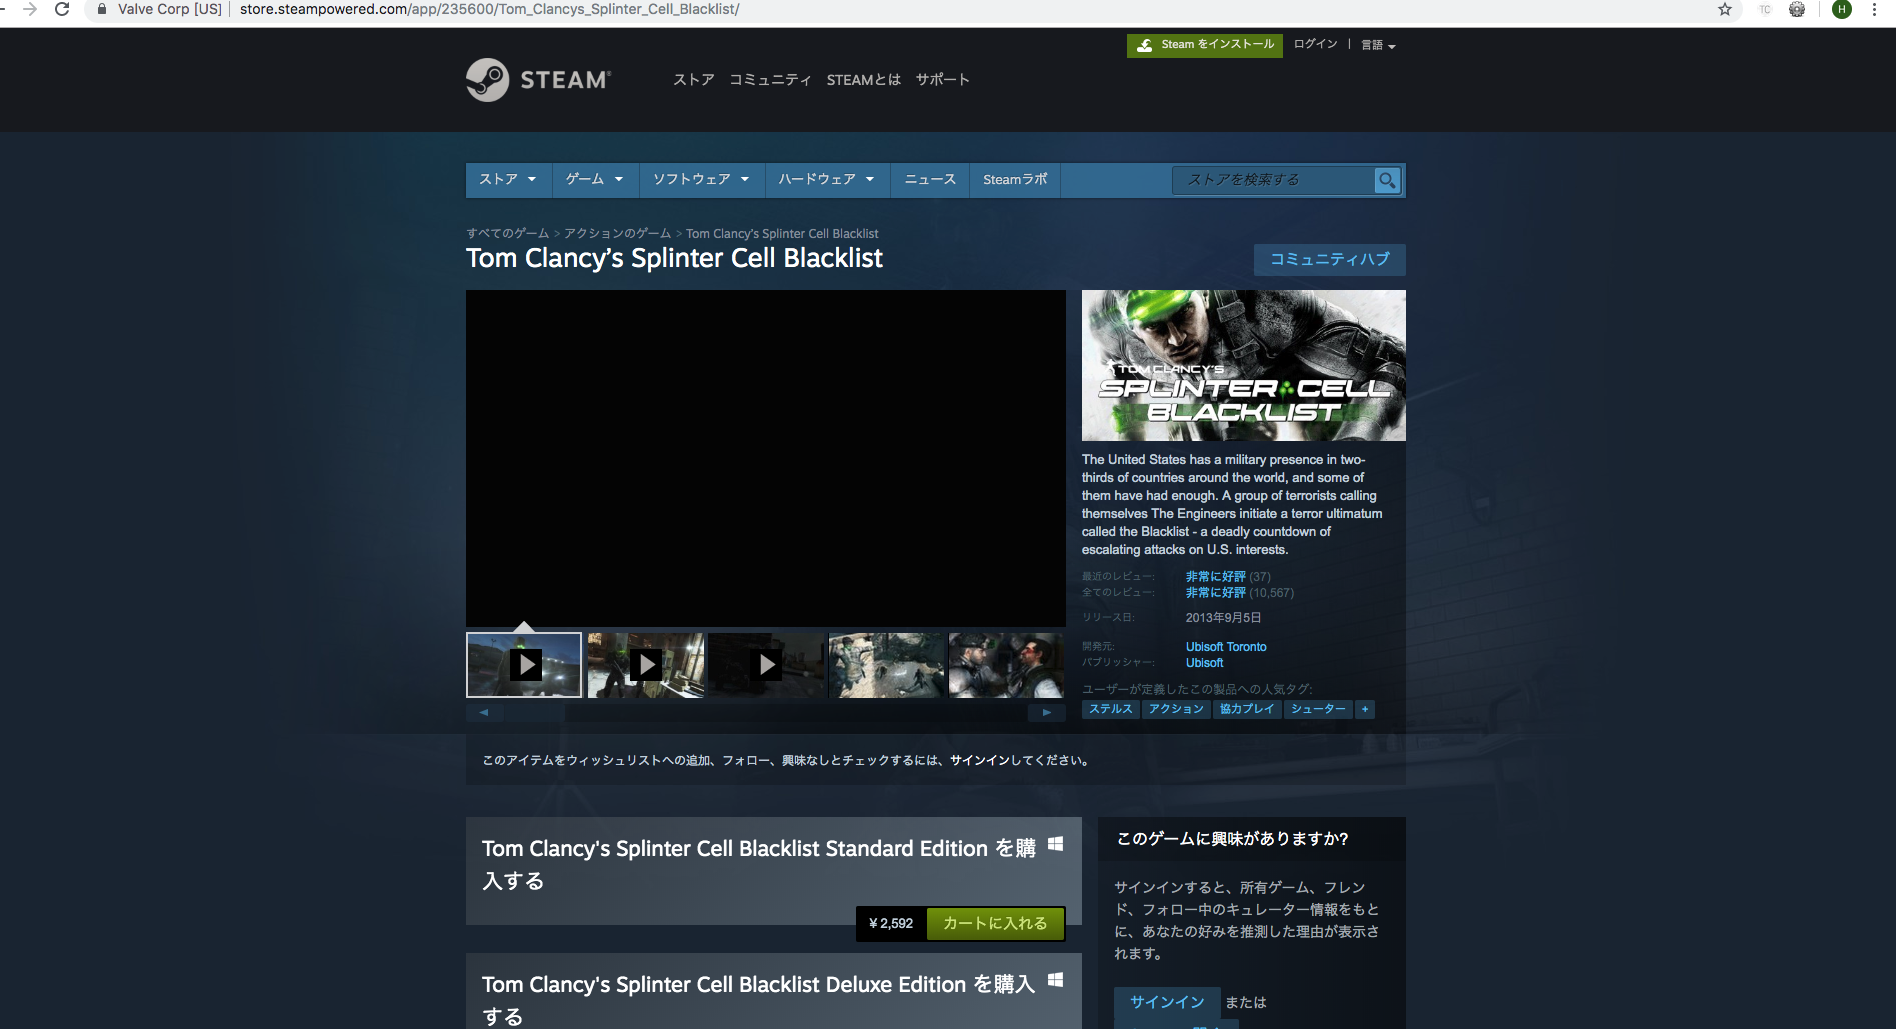 Splinter Cell Blacklistの画像